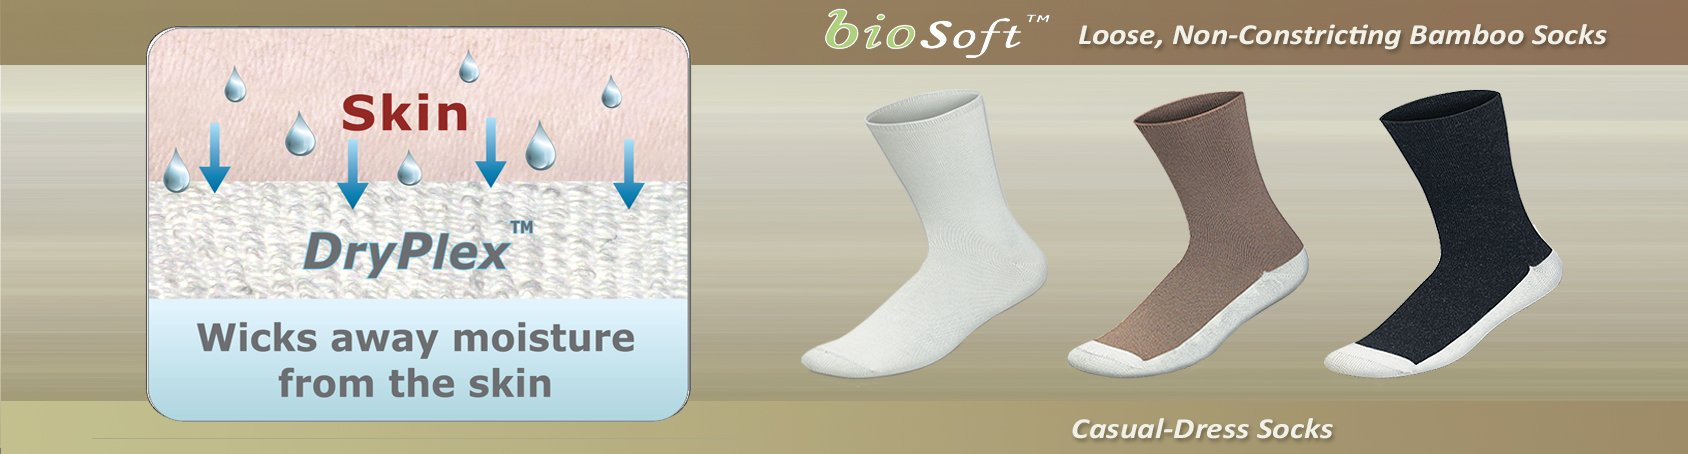 Seam Free Diabetic Arthritis Bamboo Circulation Soft Socks | Orthofeet